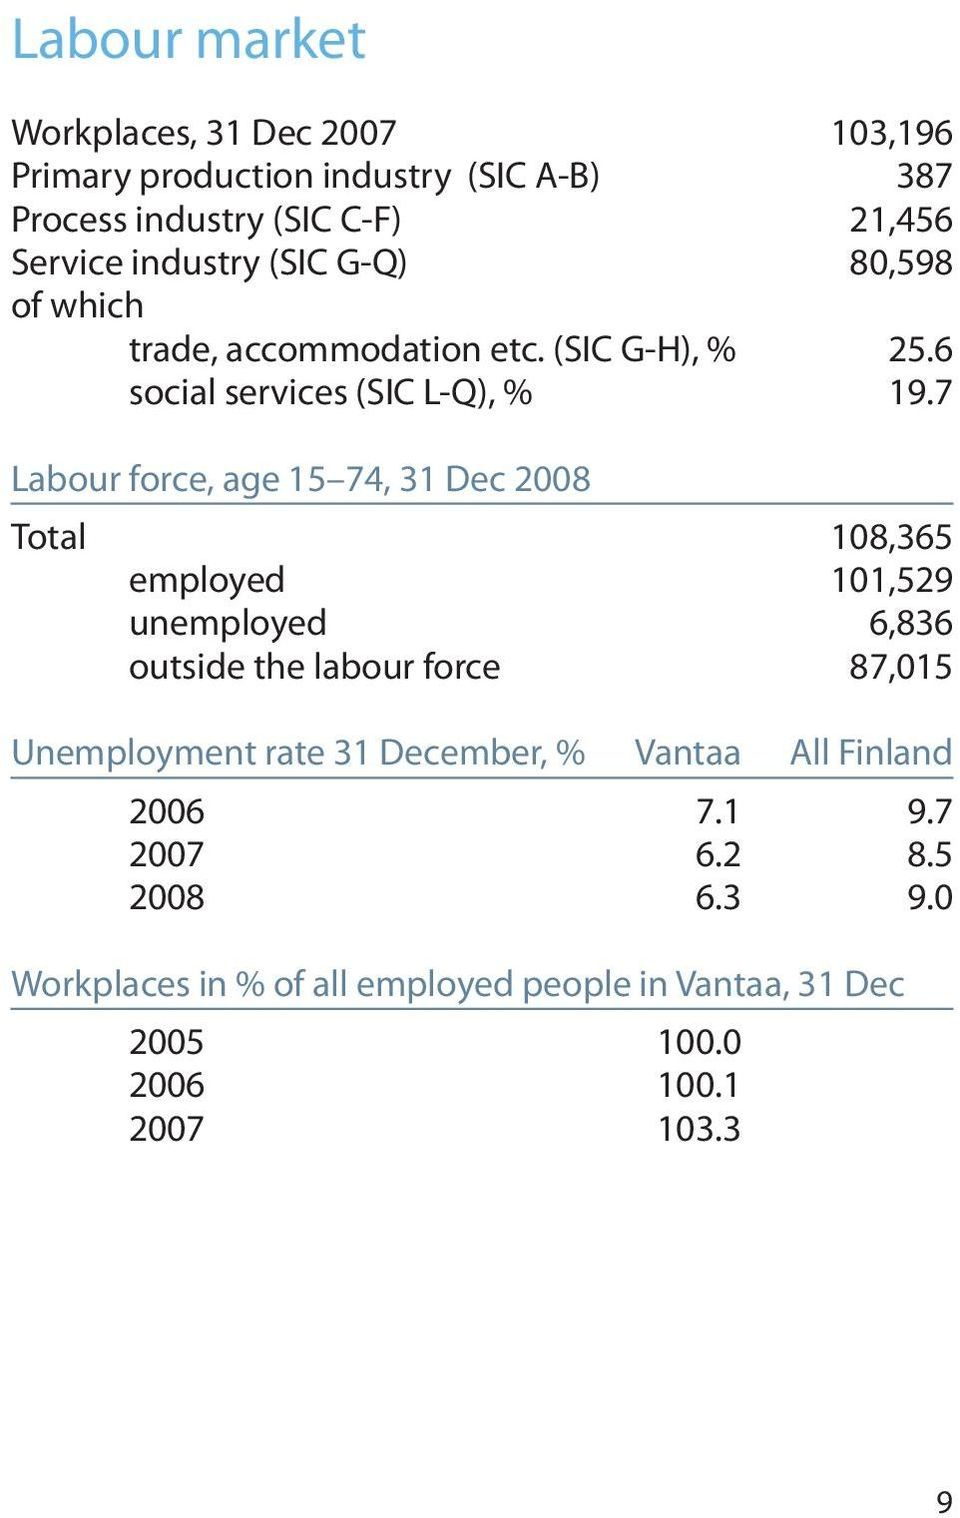 7 Labour force, age 15 74, 31 Dec 2008 Total 108,365 employed 101,529 unemployed 6,836 outside the labour force 87,015 Unemployment